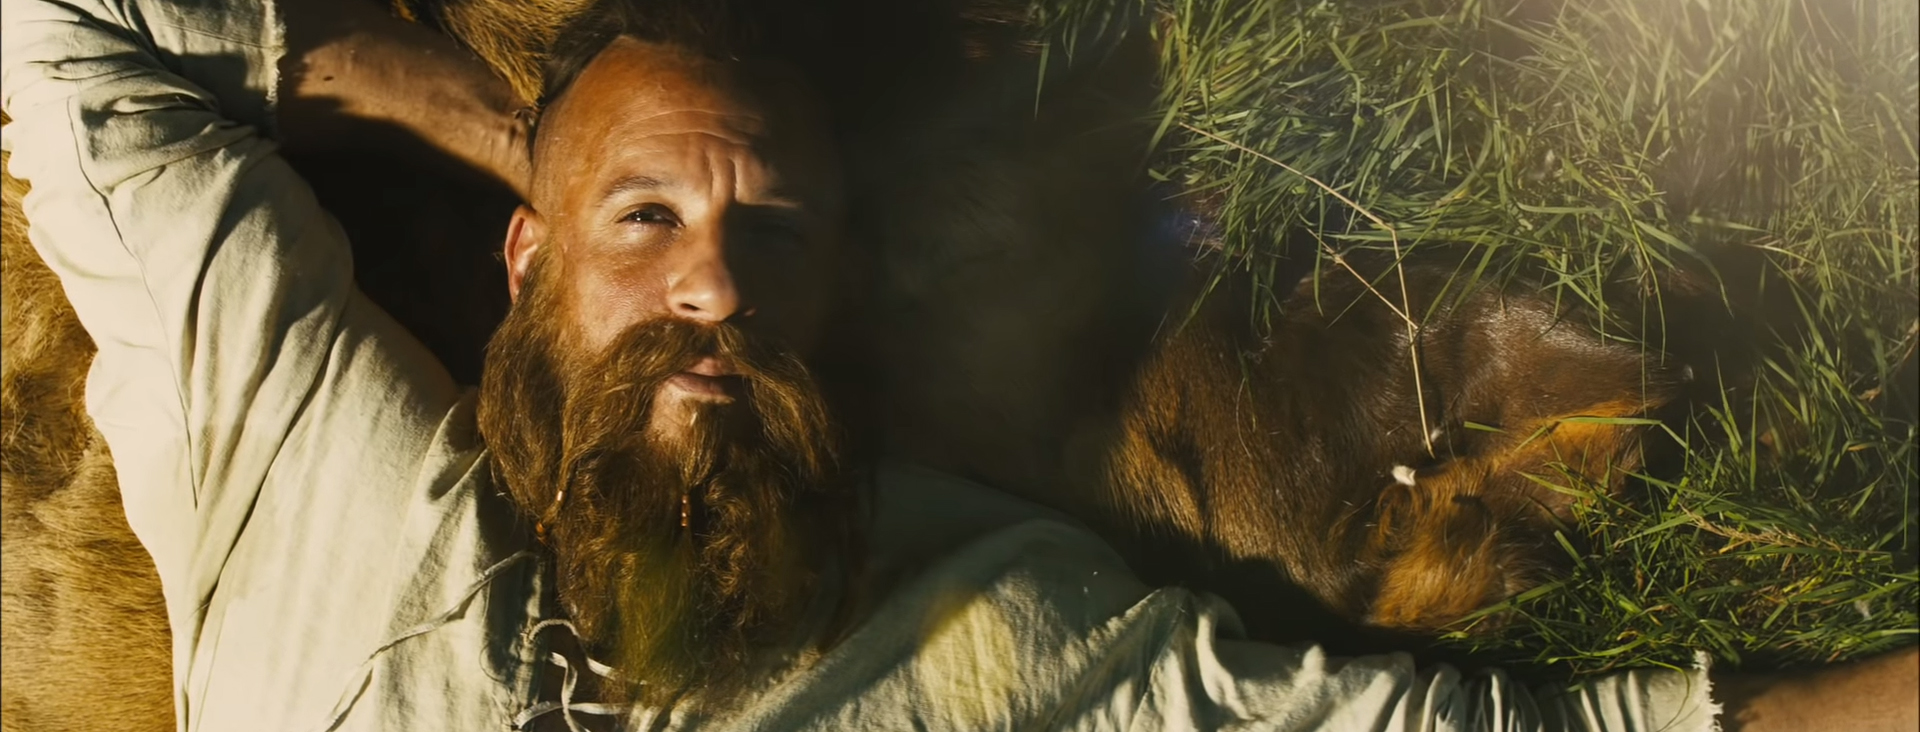 The Last Witch Hunter. Image Credit: Summit Entertainment.